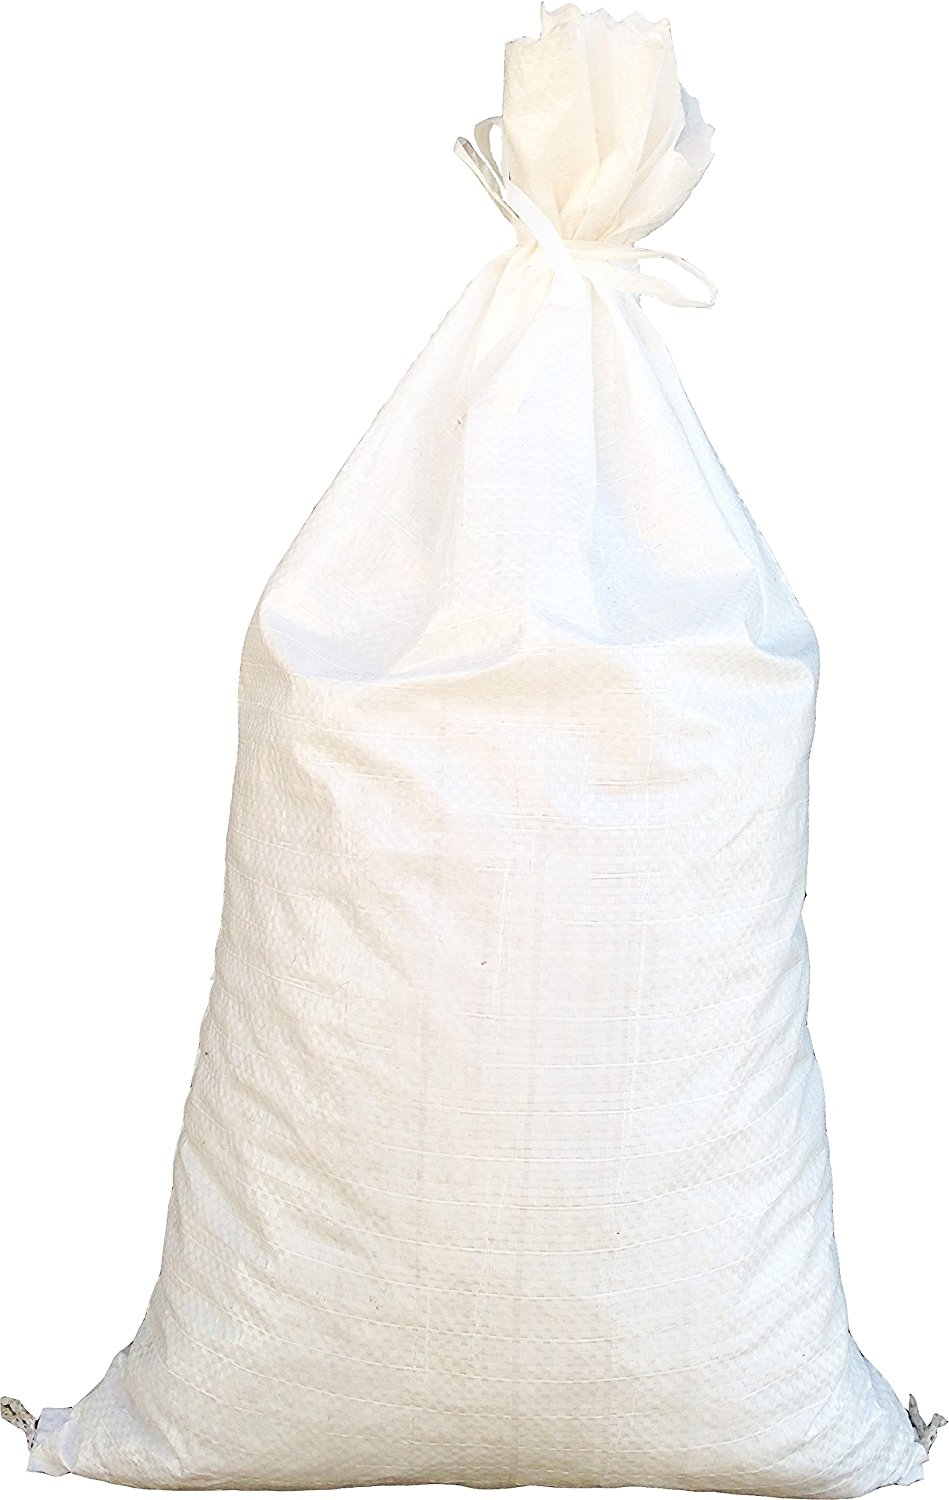 f9565a08ed Get Quotations · Sandbags - Size  14